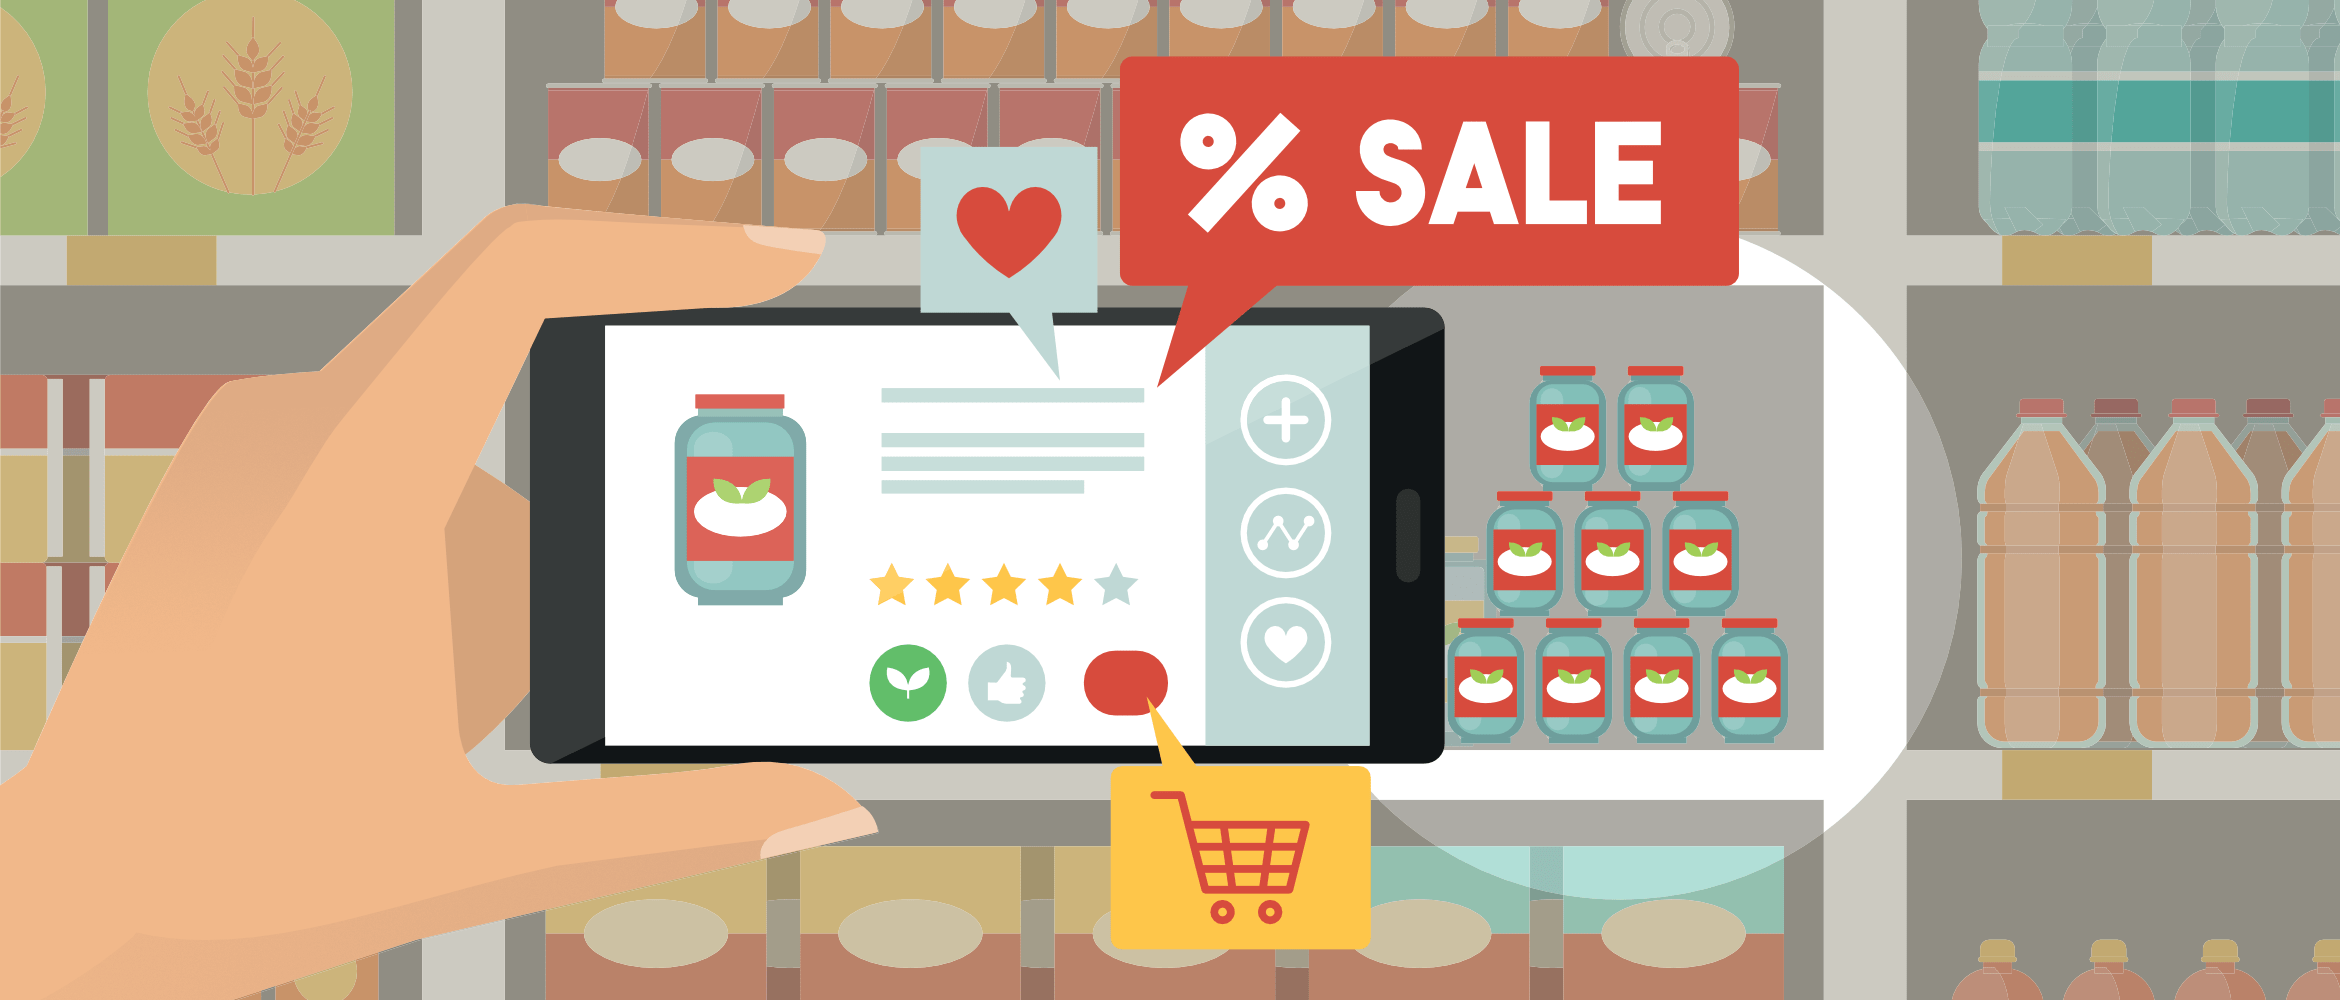 illustration of a shopper using a smartphone to detect sale items on shelves using augmented reality